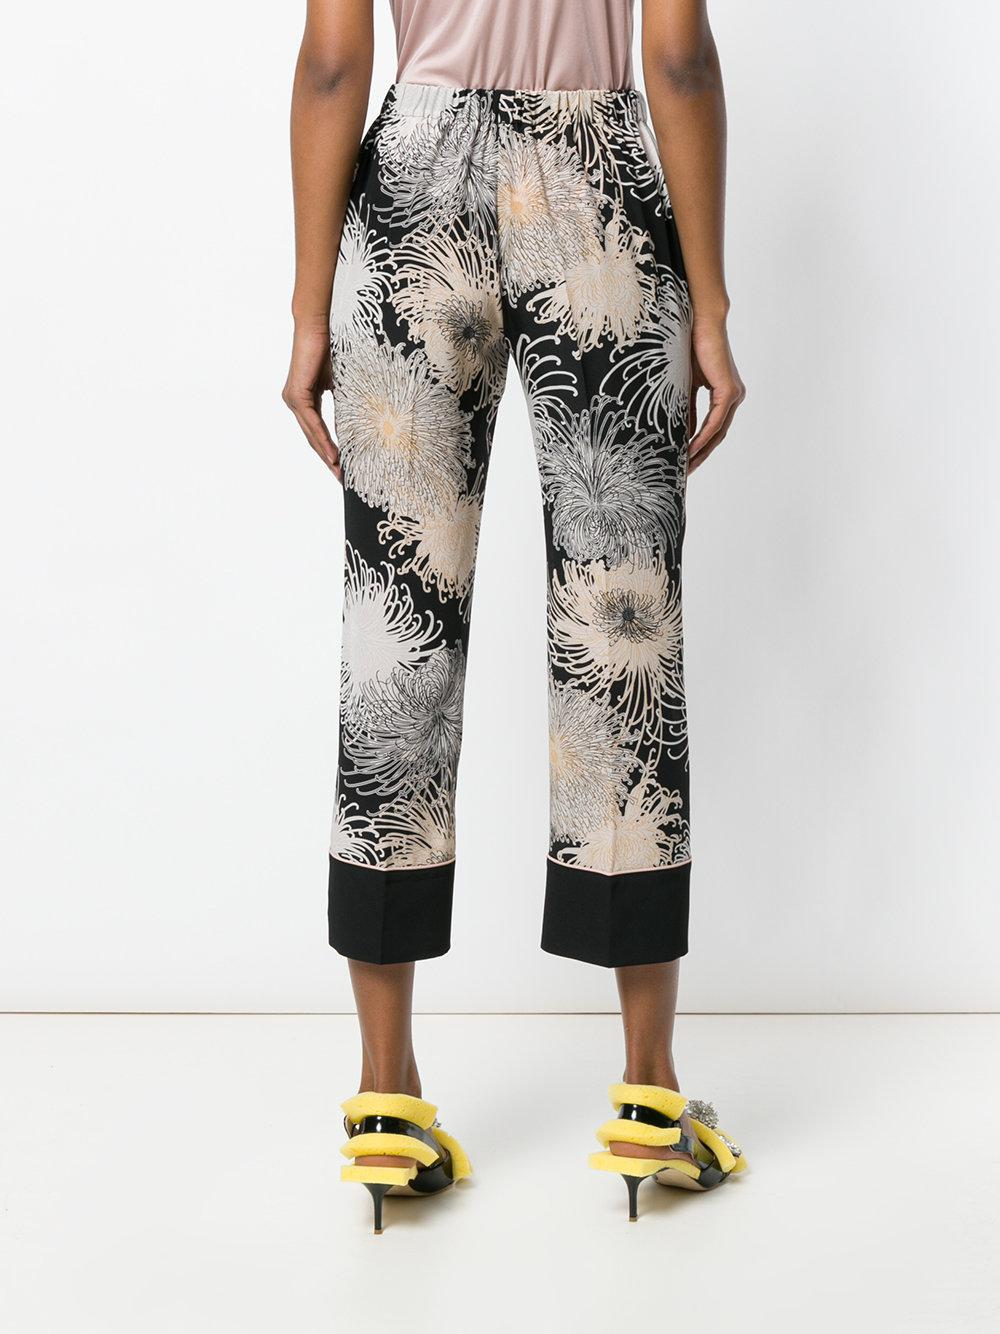 Cheap Good Selling Enjoy Shopping printed cropped trousers - Black N Brand New Unisex Online fAPN0X